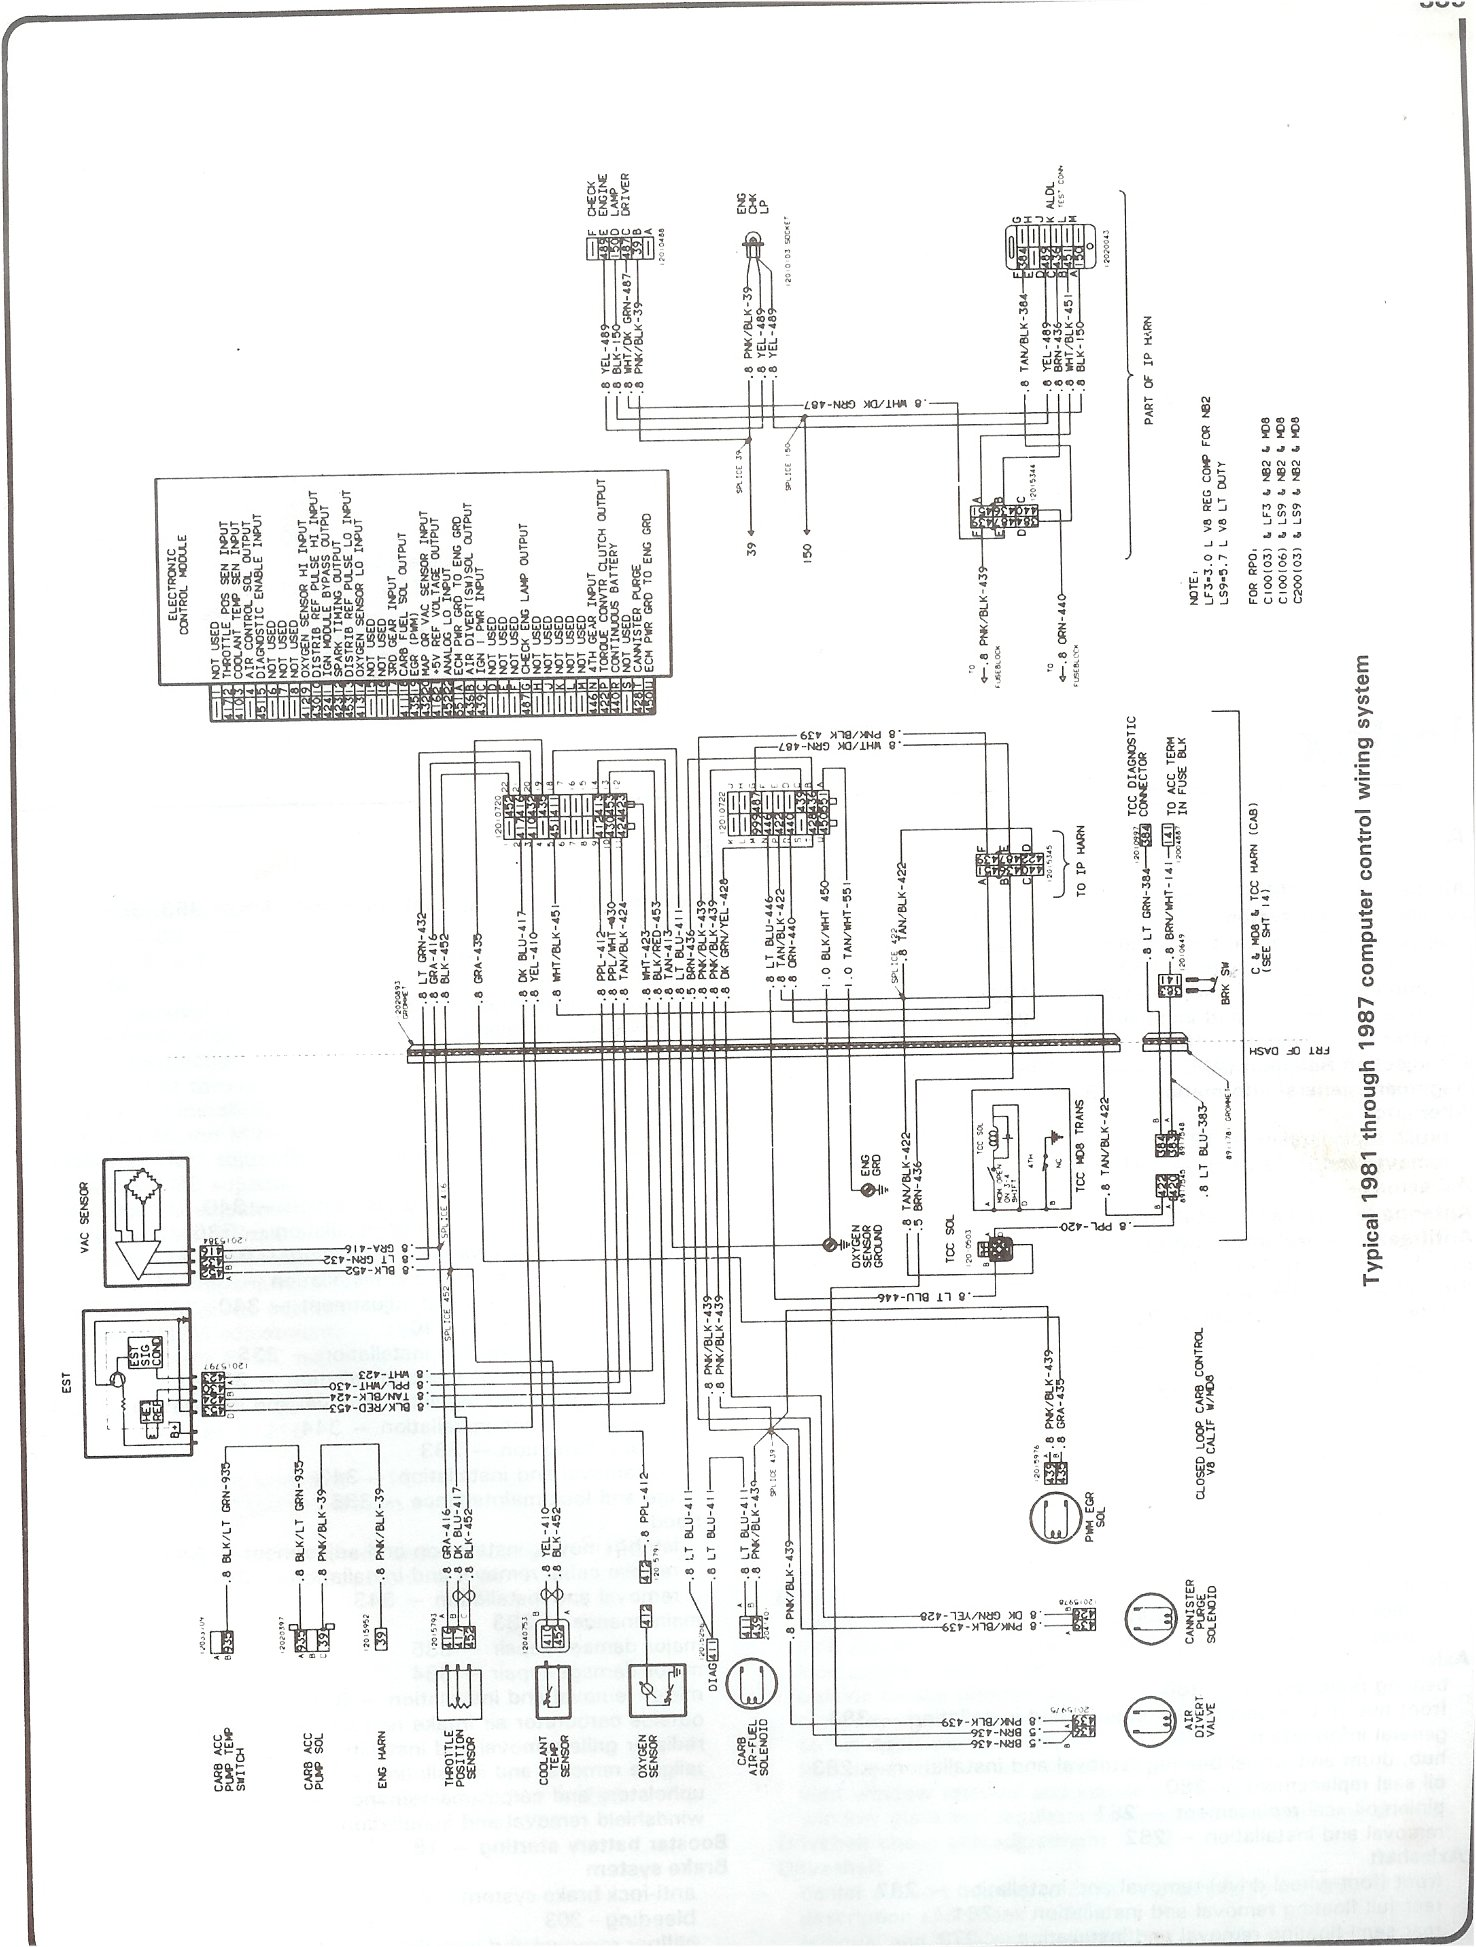 hight resolution of 87 c10 engine wiring harness diagram wiring diagram expert 1982 chevy truck engine wiring harness 1987